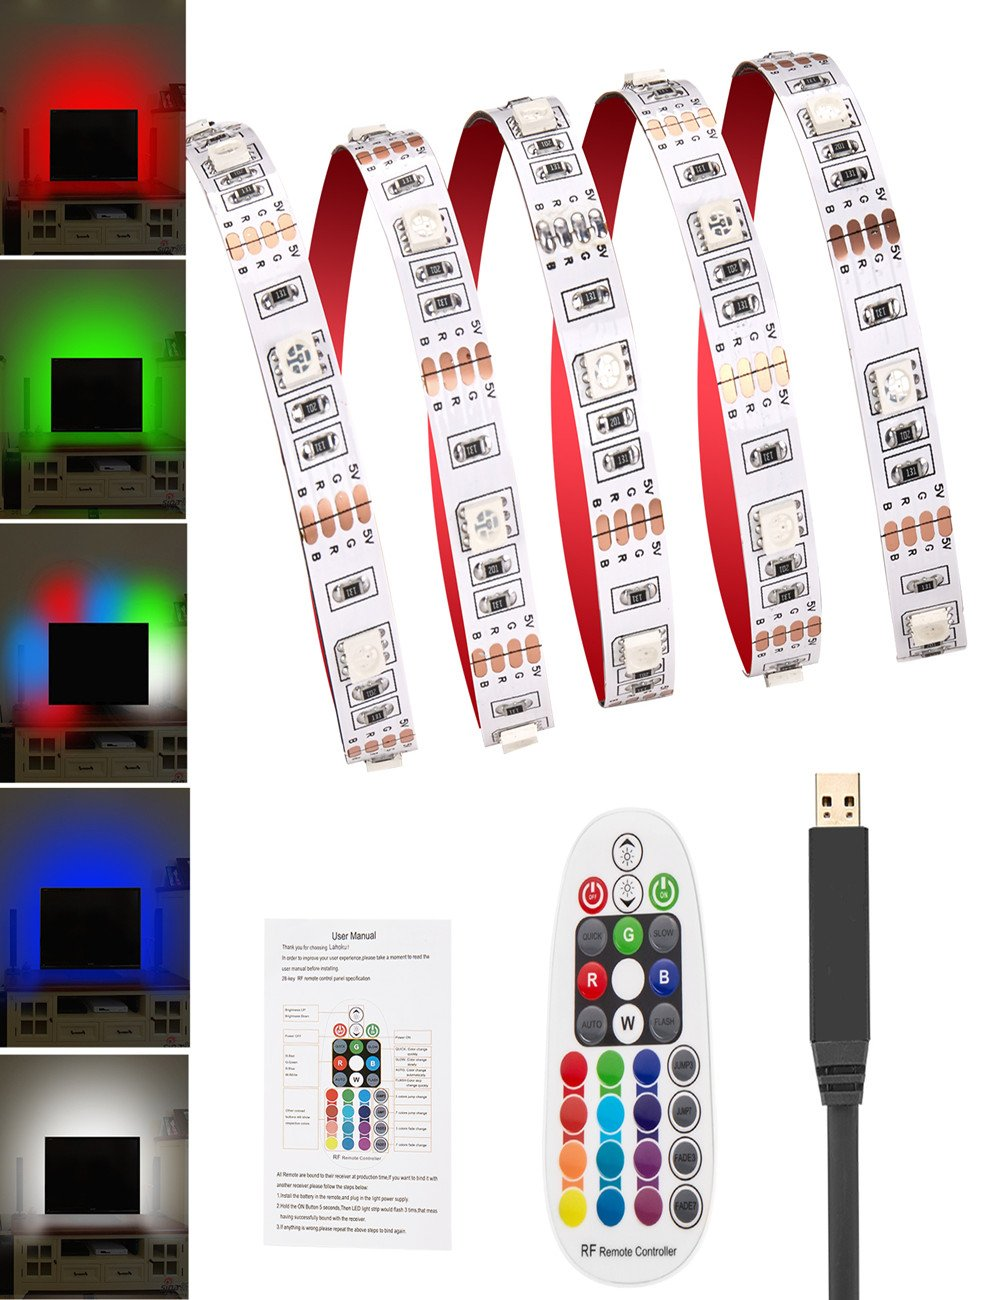 HL RGB TV BackLight Kit 9.84Ft Multi-color Flexible LED Strip Light with USB Cable and Mini Controller TV/Laptop Background Lighting-White Color Changing